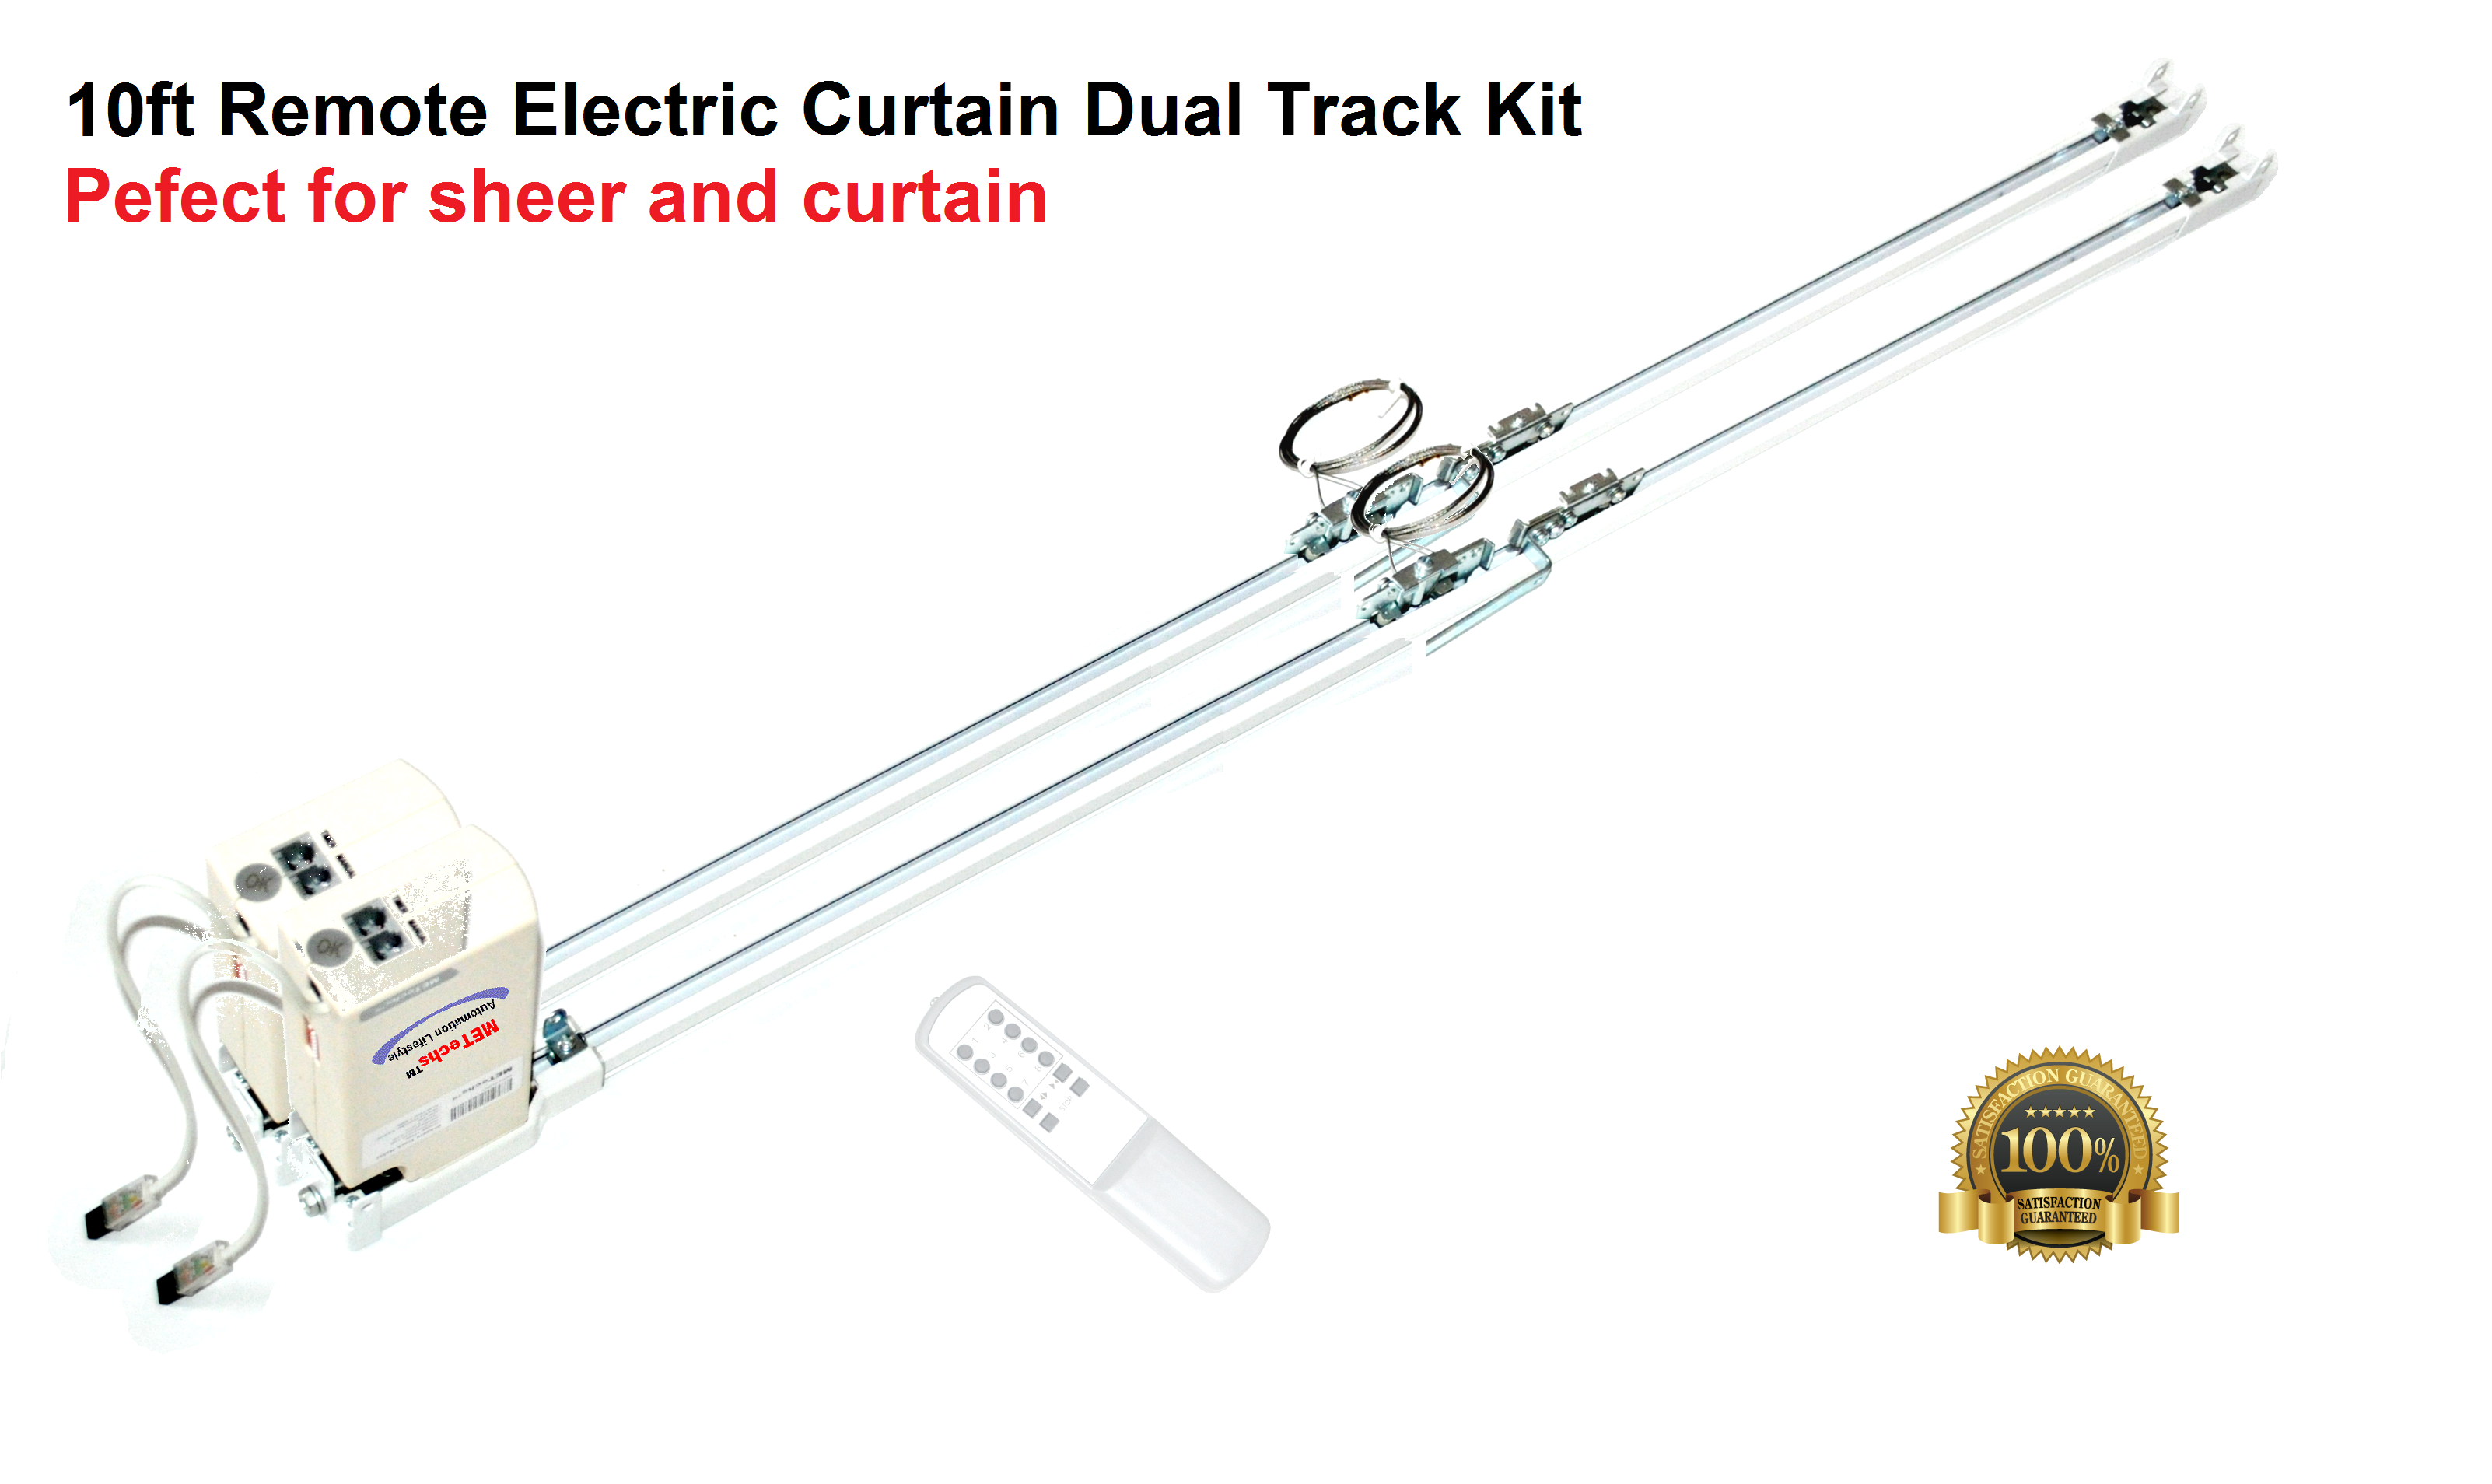 122 Remote Control Electric Double Curtain Rods Cl200t3m Dual Dual Remote Control Curtain System